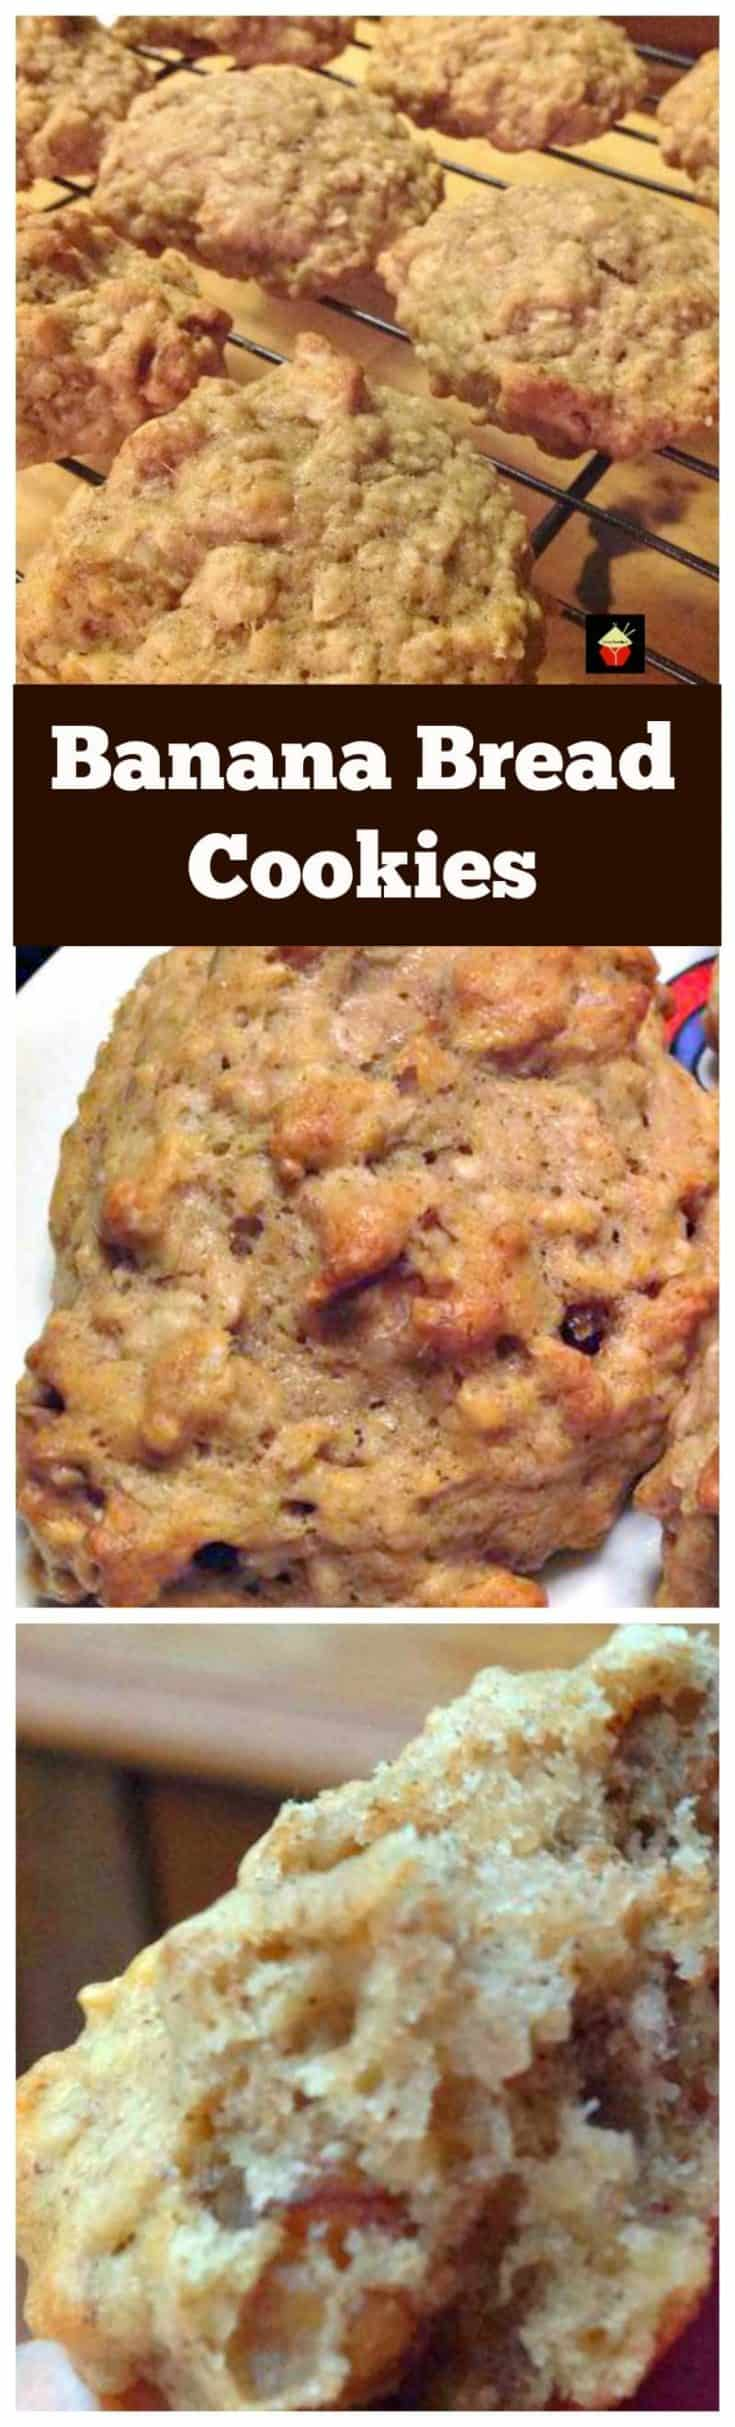 Banana Bread Cookies. Yep... banana bread in a cookie! Easy and flexible recipe. Great for snacks, breakfast, lunch boxes or anytime!